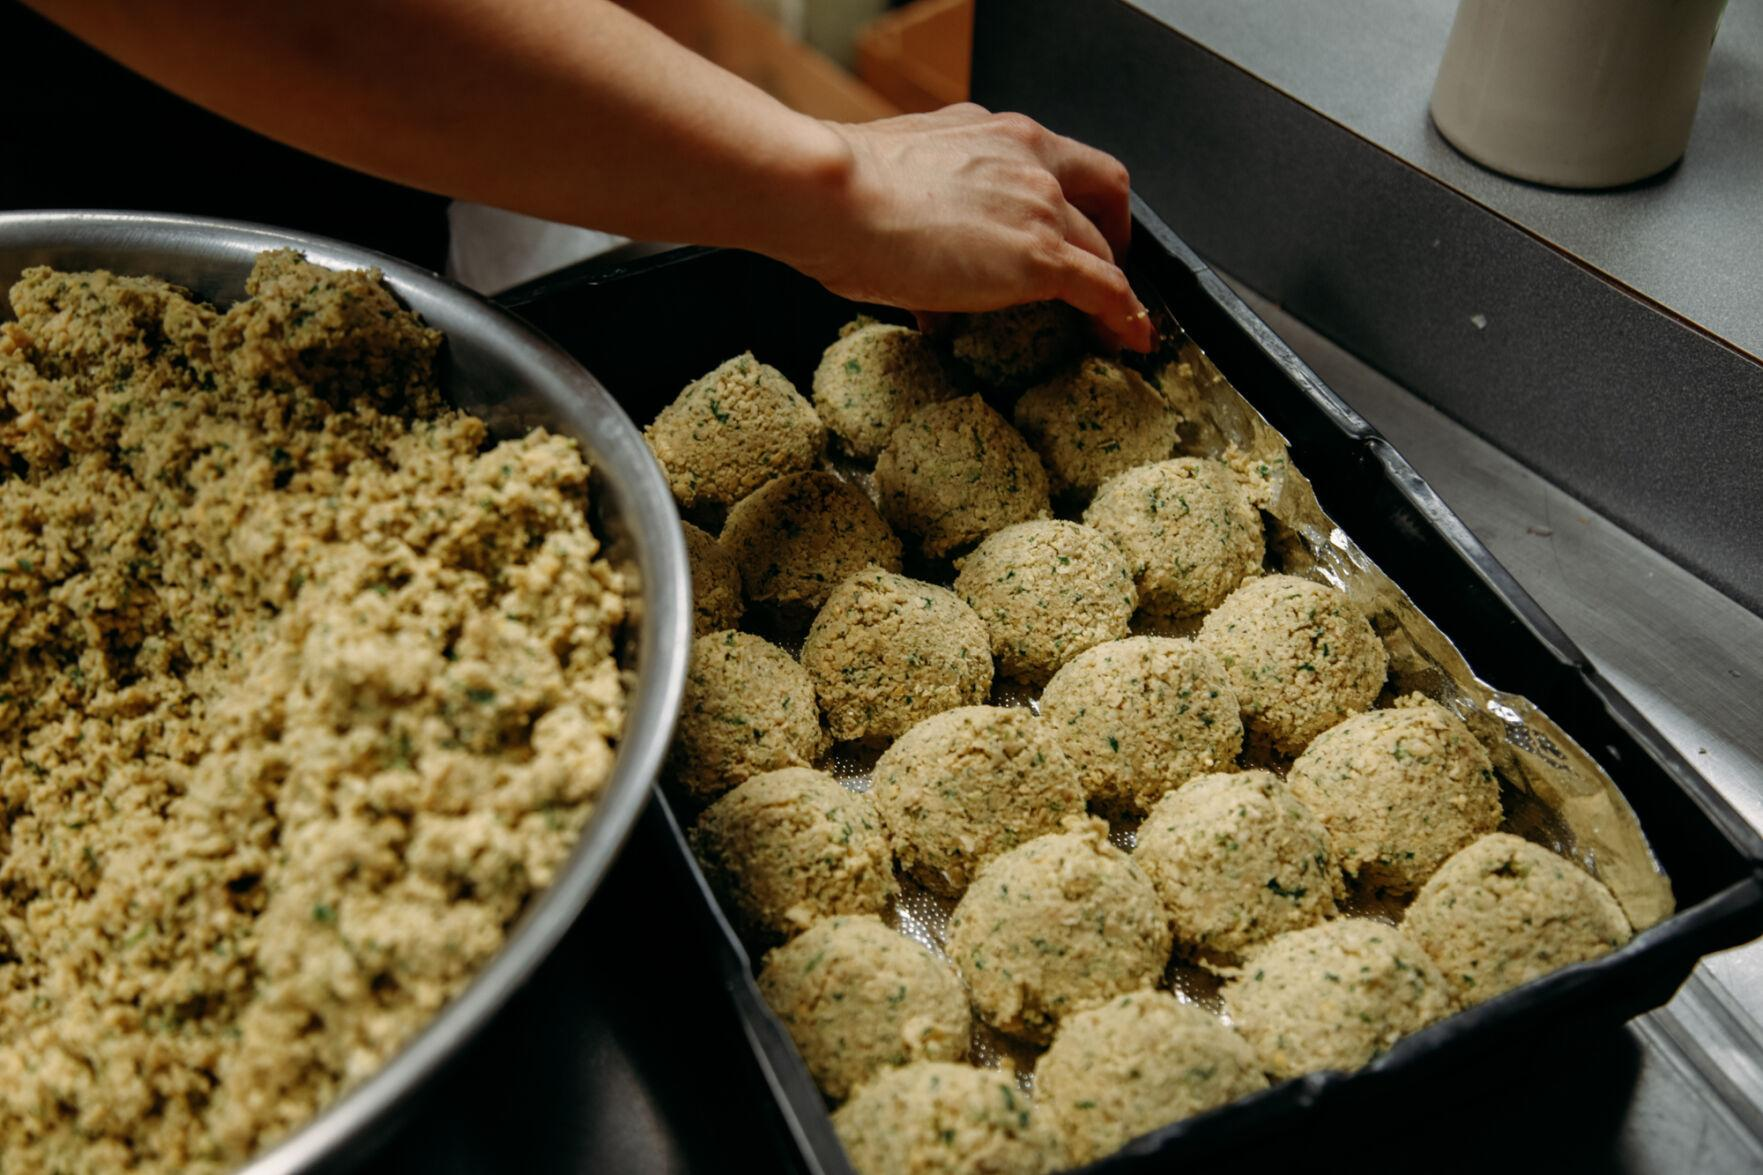 Fresh falafel is produced every alternate day in the International Café.